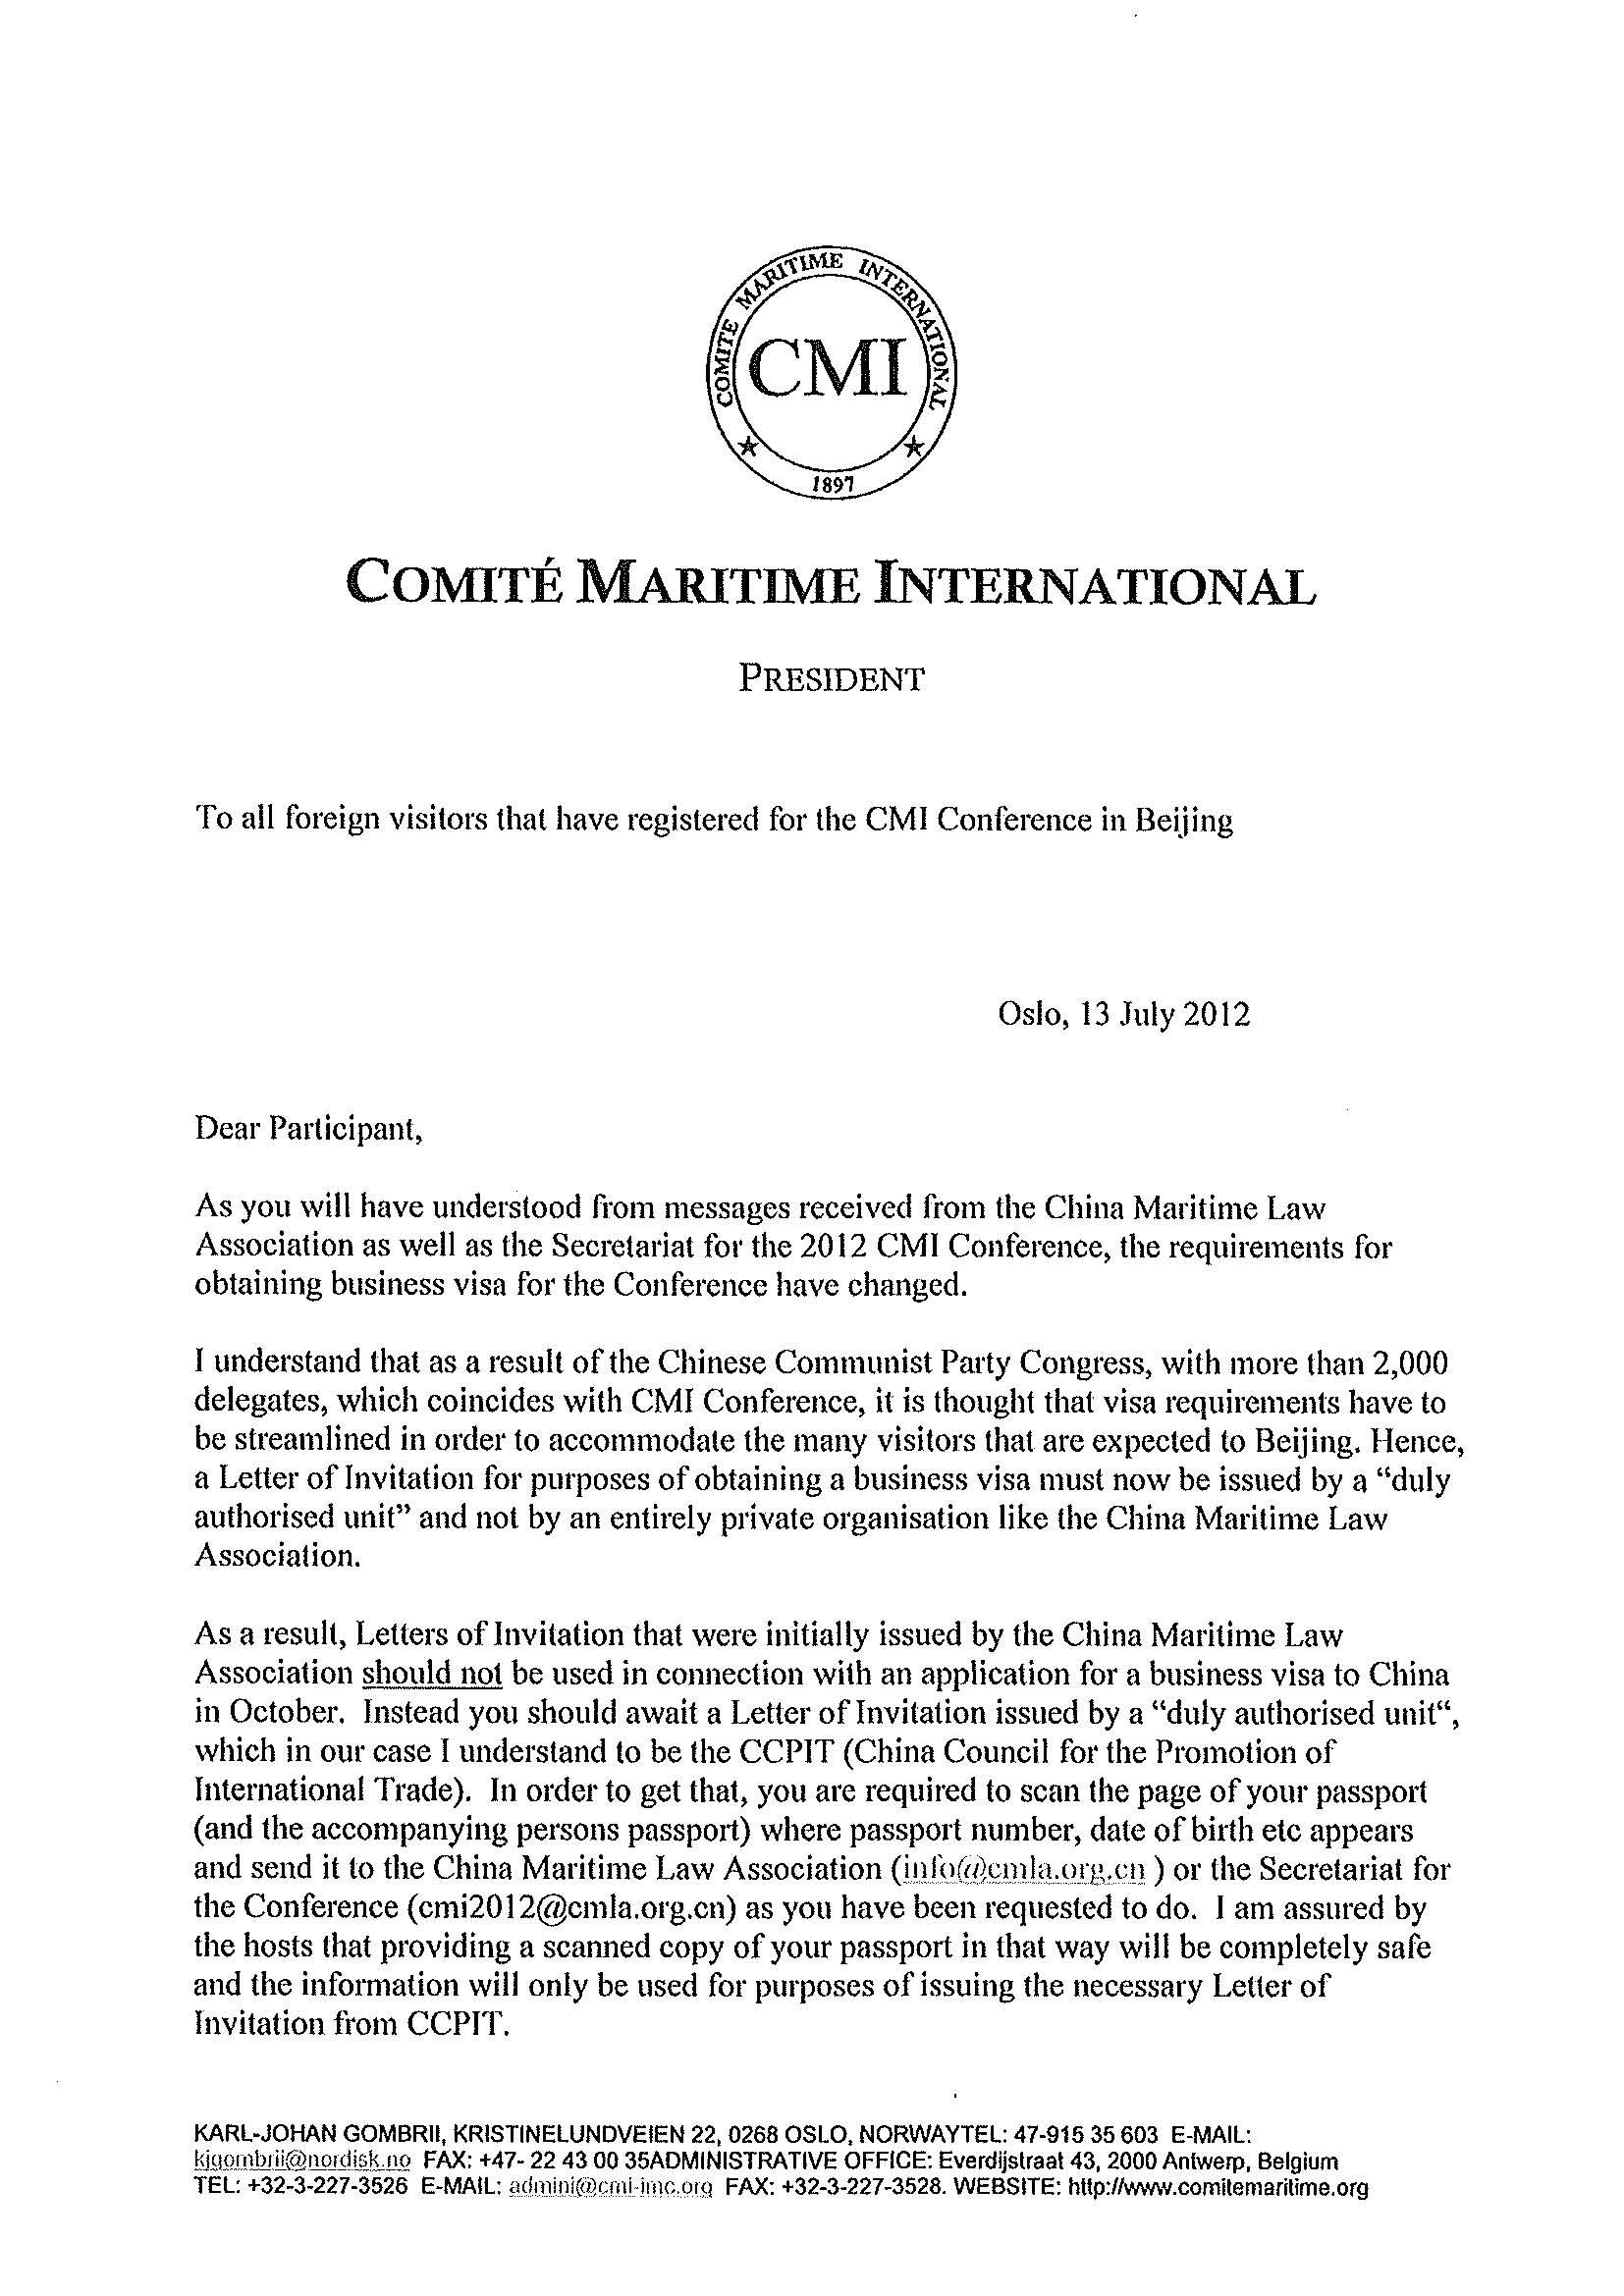 Correspondence From The President Comite Maritime InternationalVisa on sample travel letters, sample commercial letters, sample letter of probation, sample divorce, sample admission letters, sample good bye letters, sample interview letter, sample government letters, sample demand letter, sample nursing letters, example legal letters, sample technical letters, sample letter format, legal wording for letters, sample training letters, sample communication letters, sample letter of intent, sample procurement letters, sample letter court judge, sample letter proof of tenant,